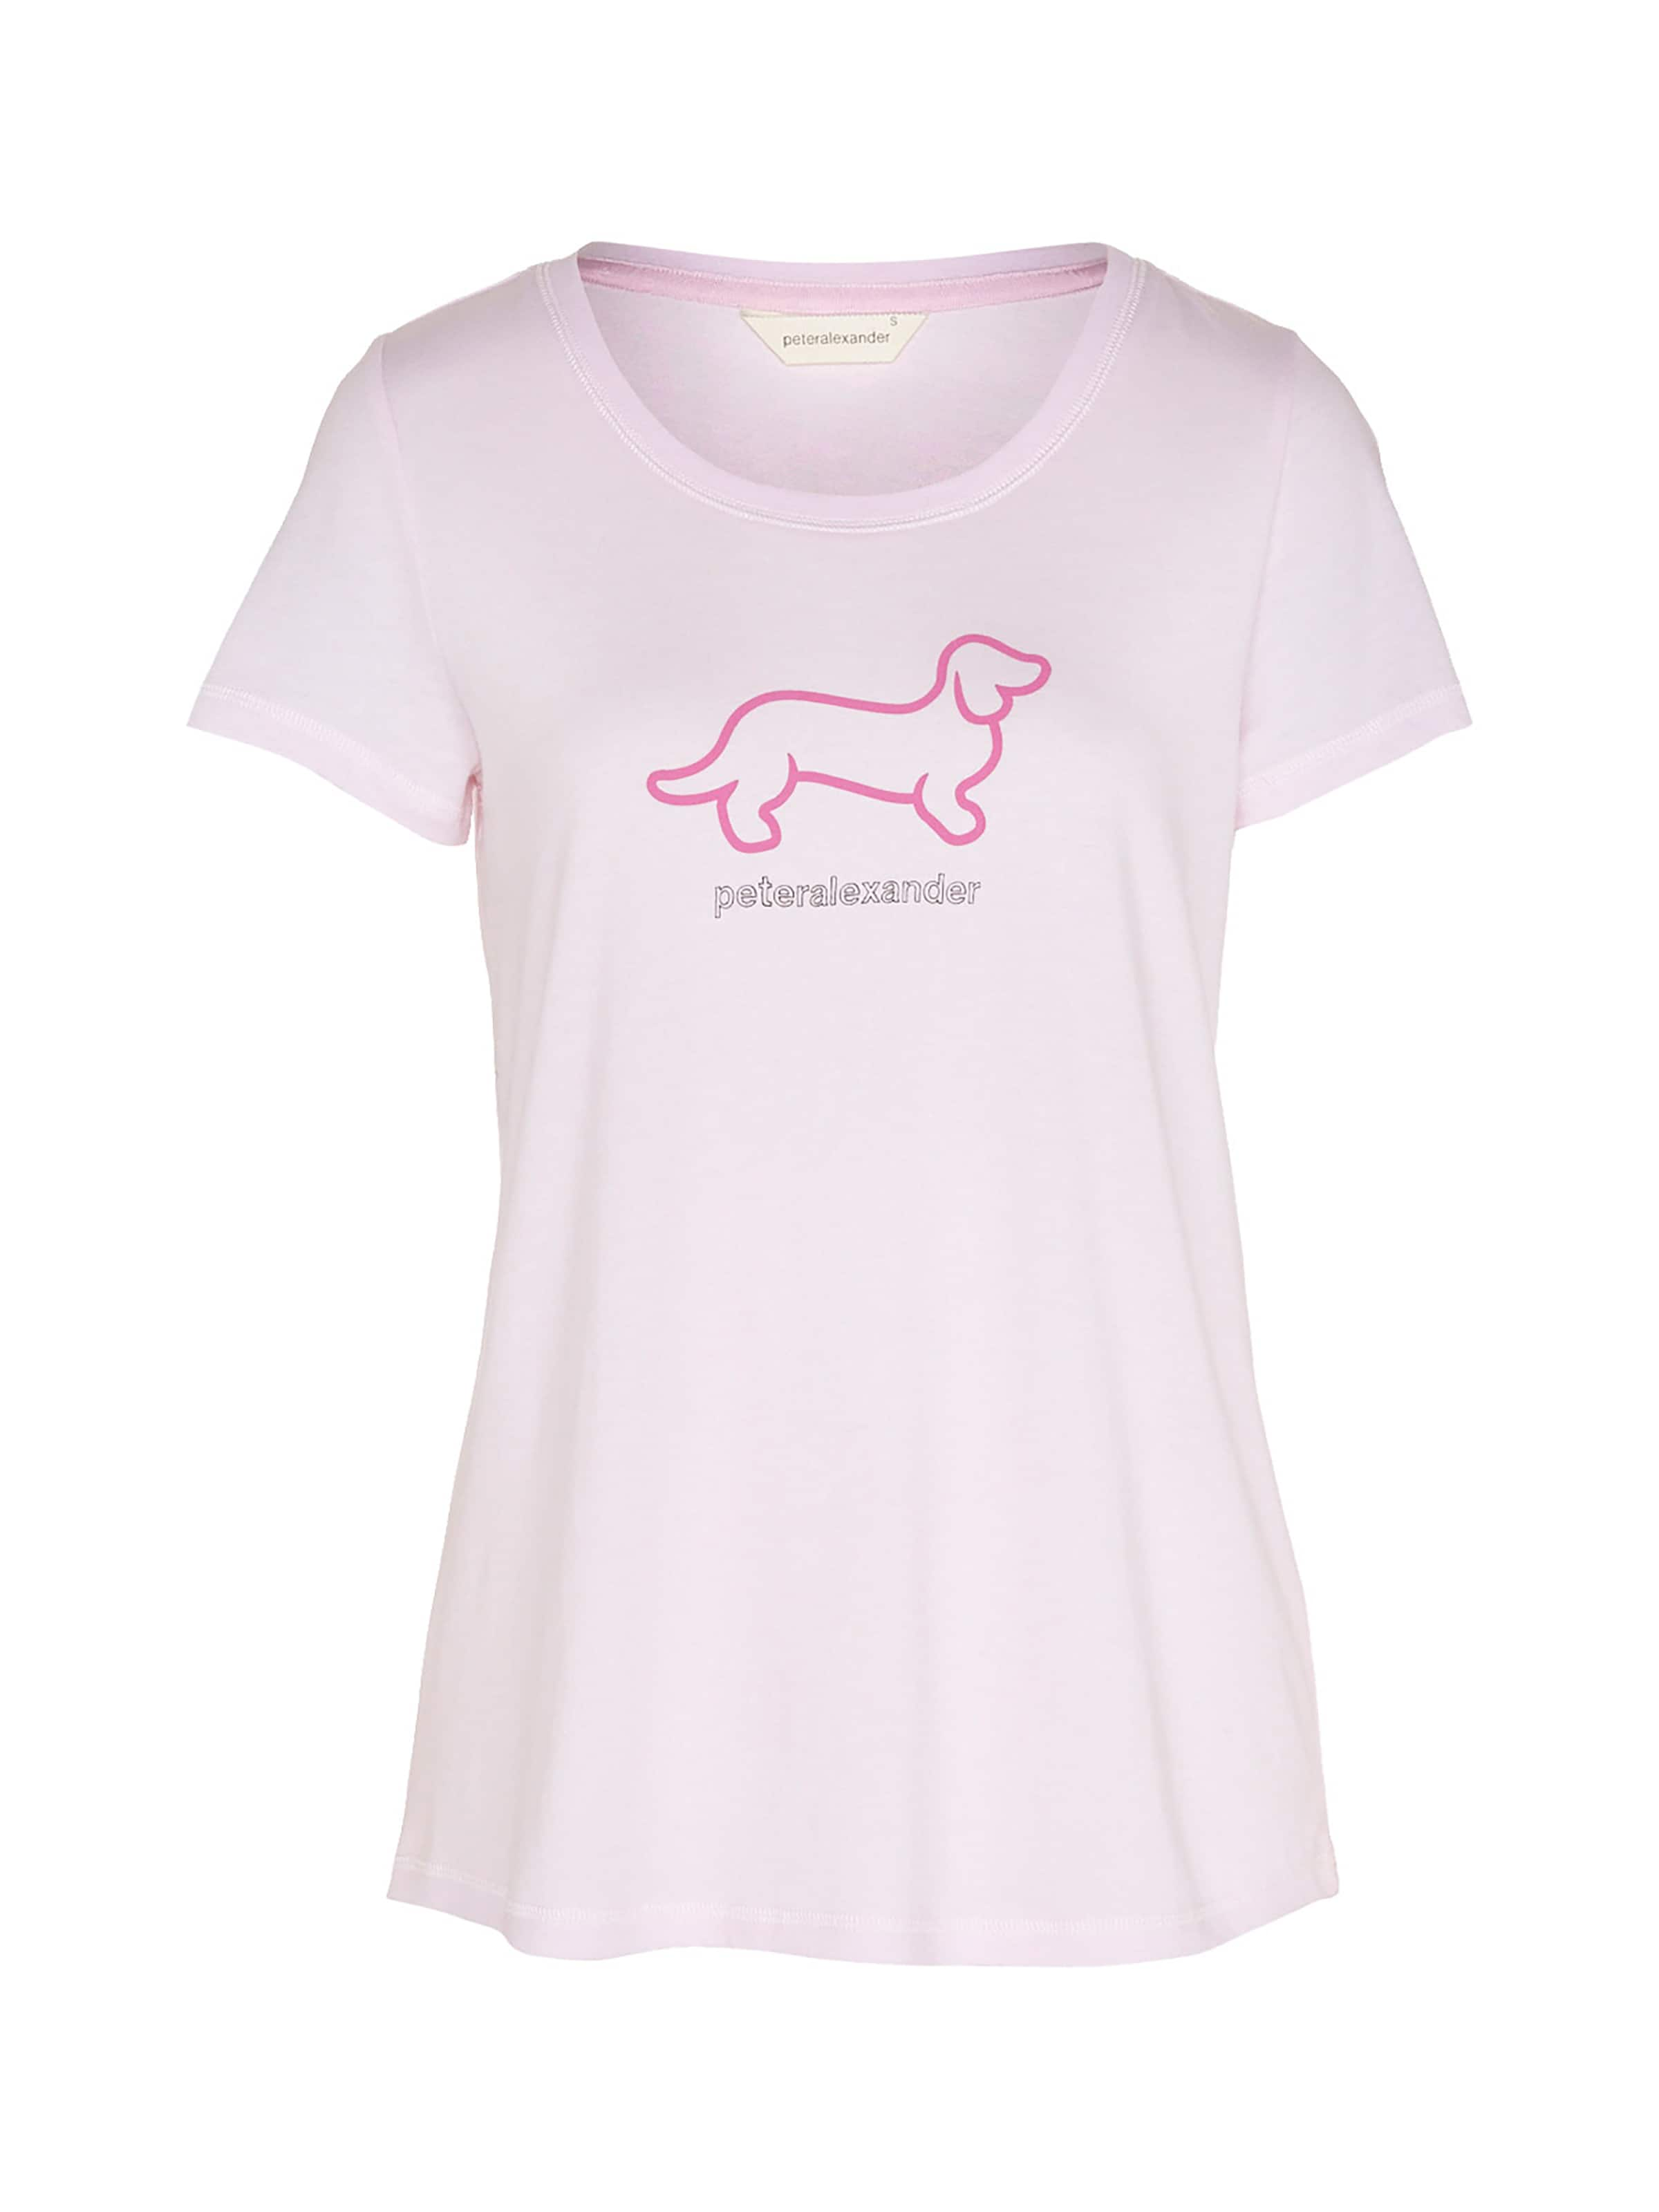 P.A. Classic Penny Tee | Peter Alexander